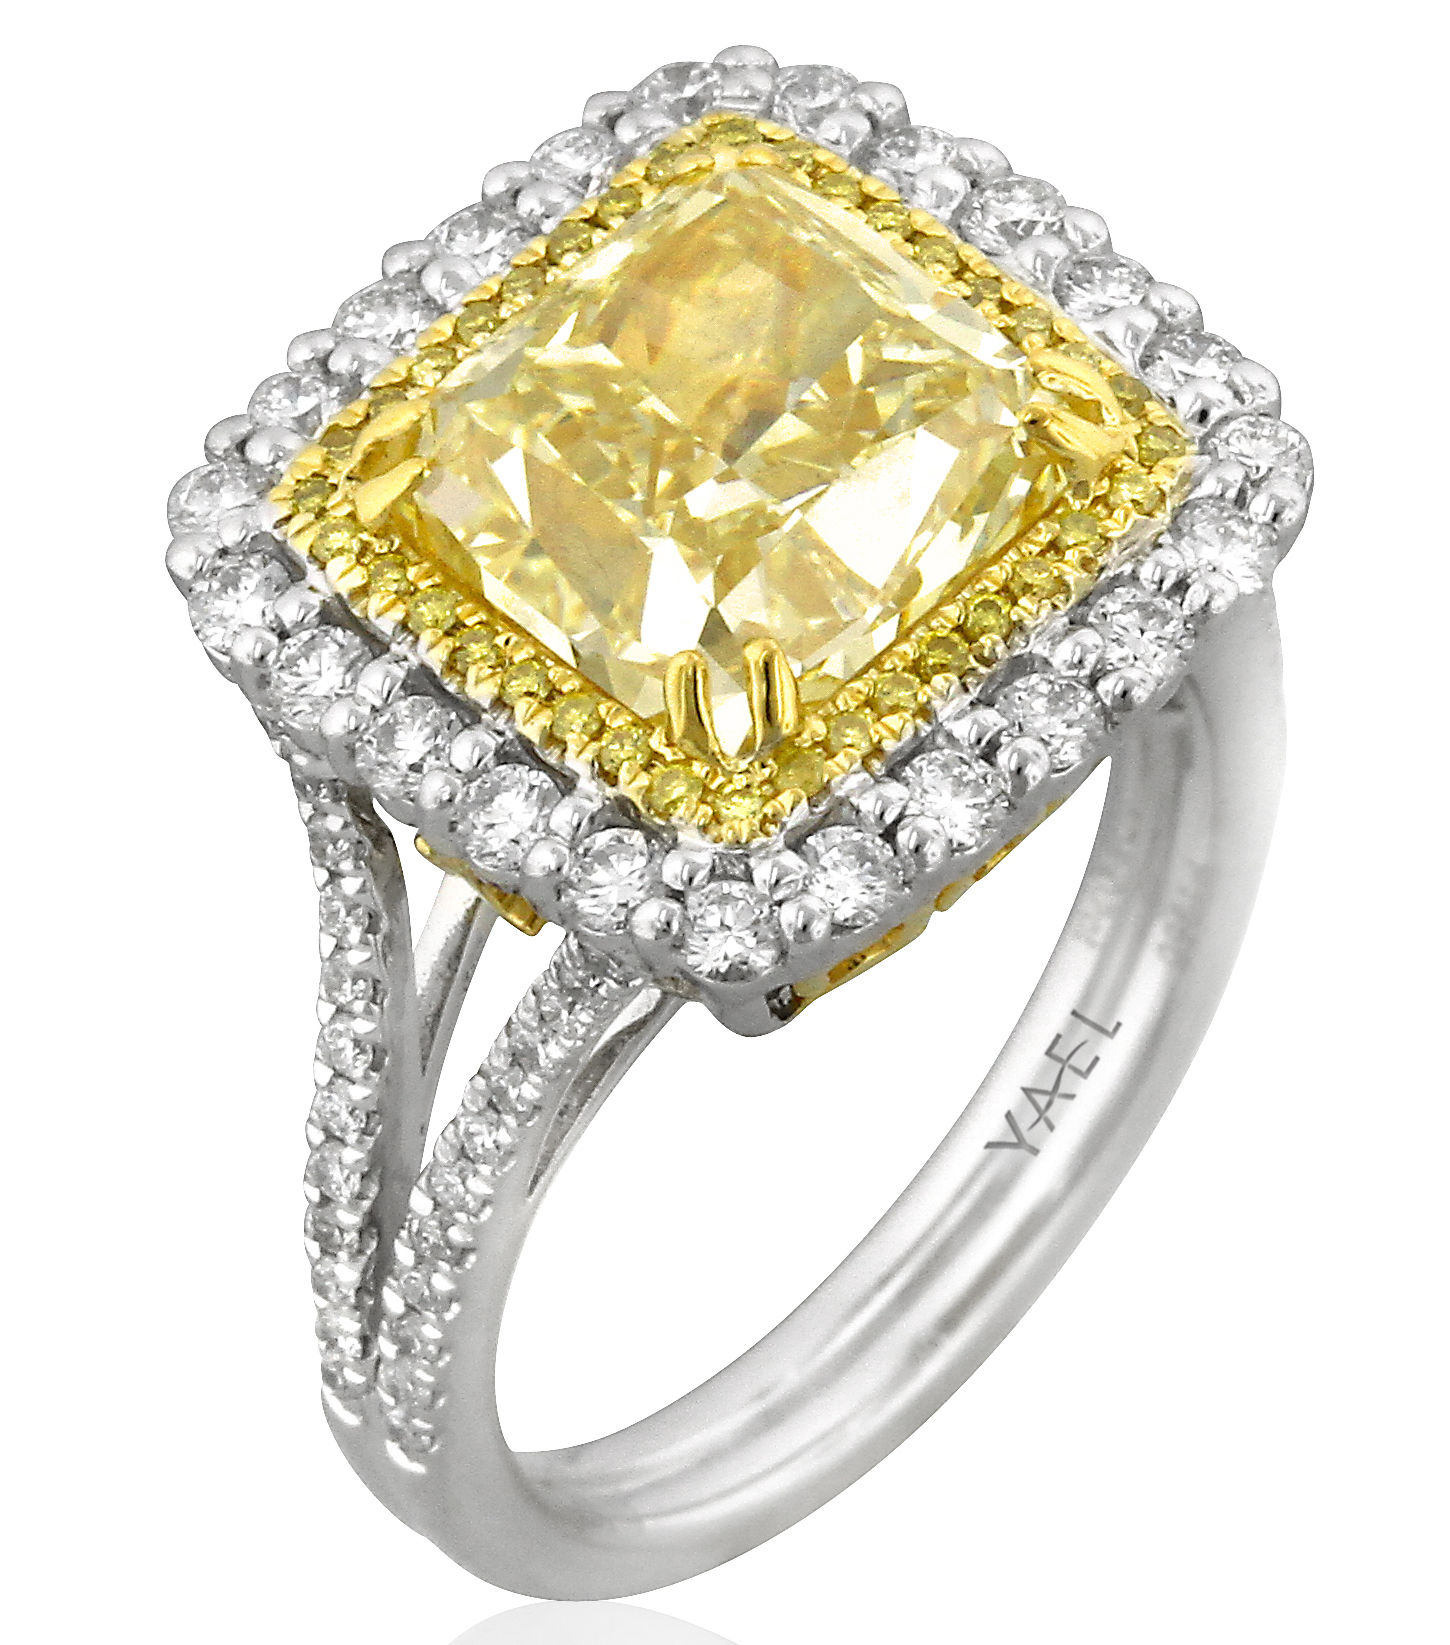 Yael Designs fancy yellow diamond ring | JCK On Your Market